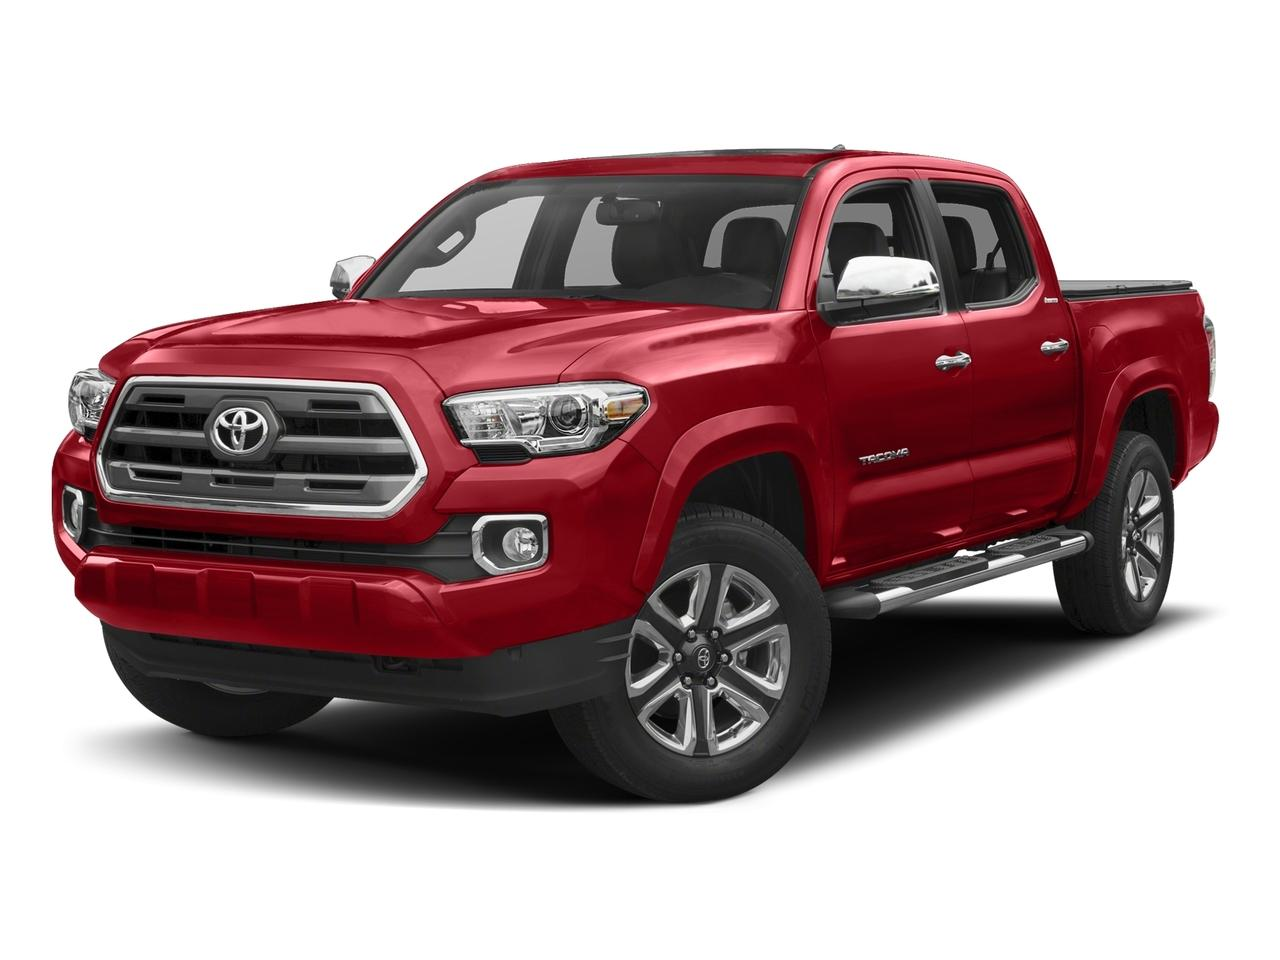 2017 Toyota Tacoma Vehicle Photo in Tulsa, OK 74133